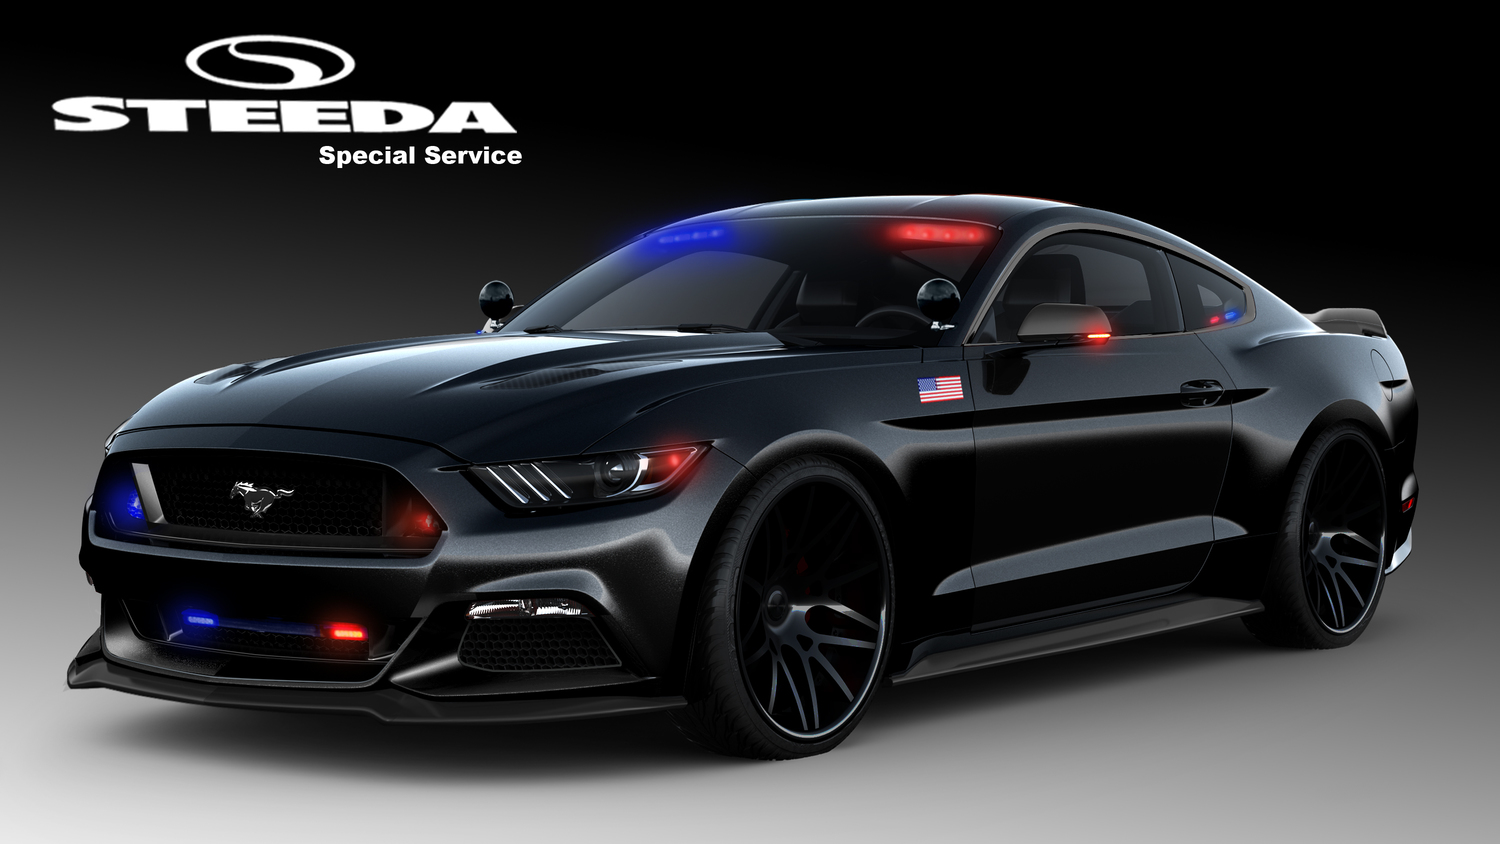 Customized Mustang >> S550 Mustang Police Car from Steeda Is Ready to Protect and Serve - autoevolution